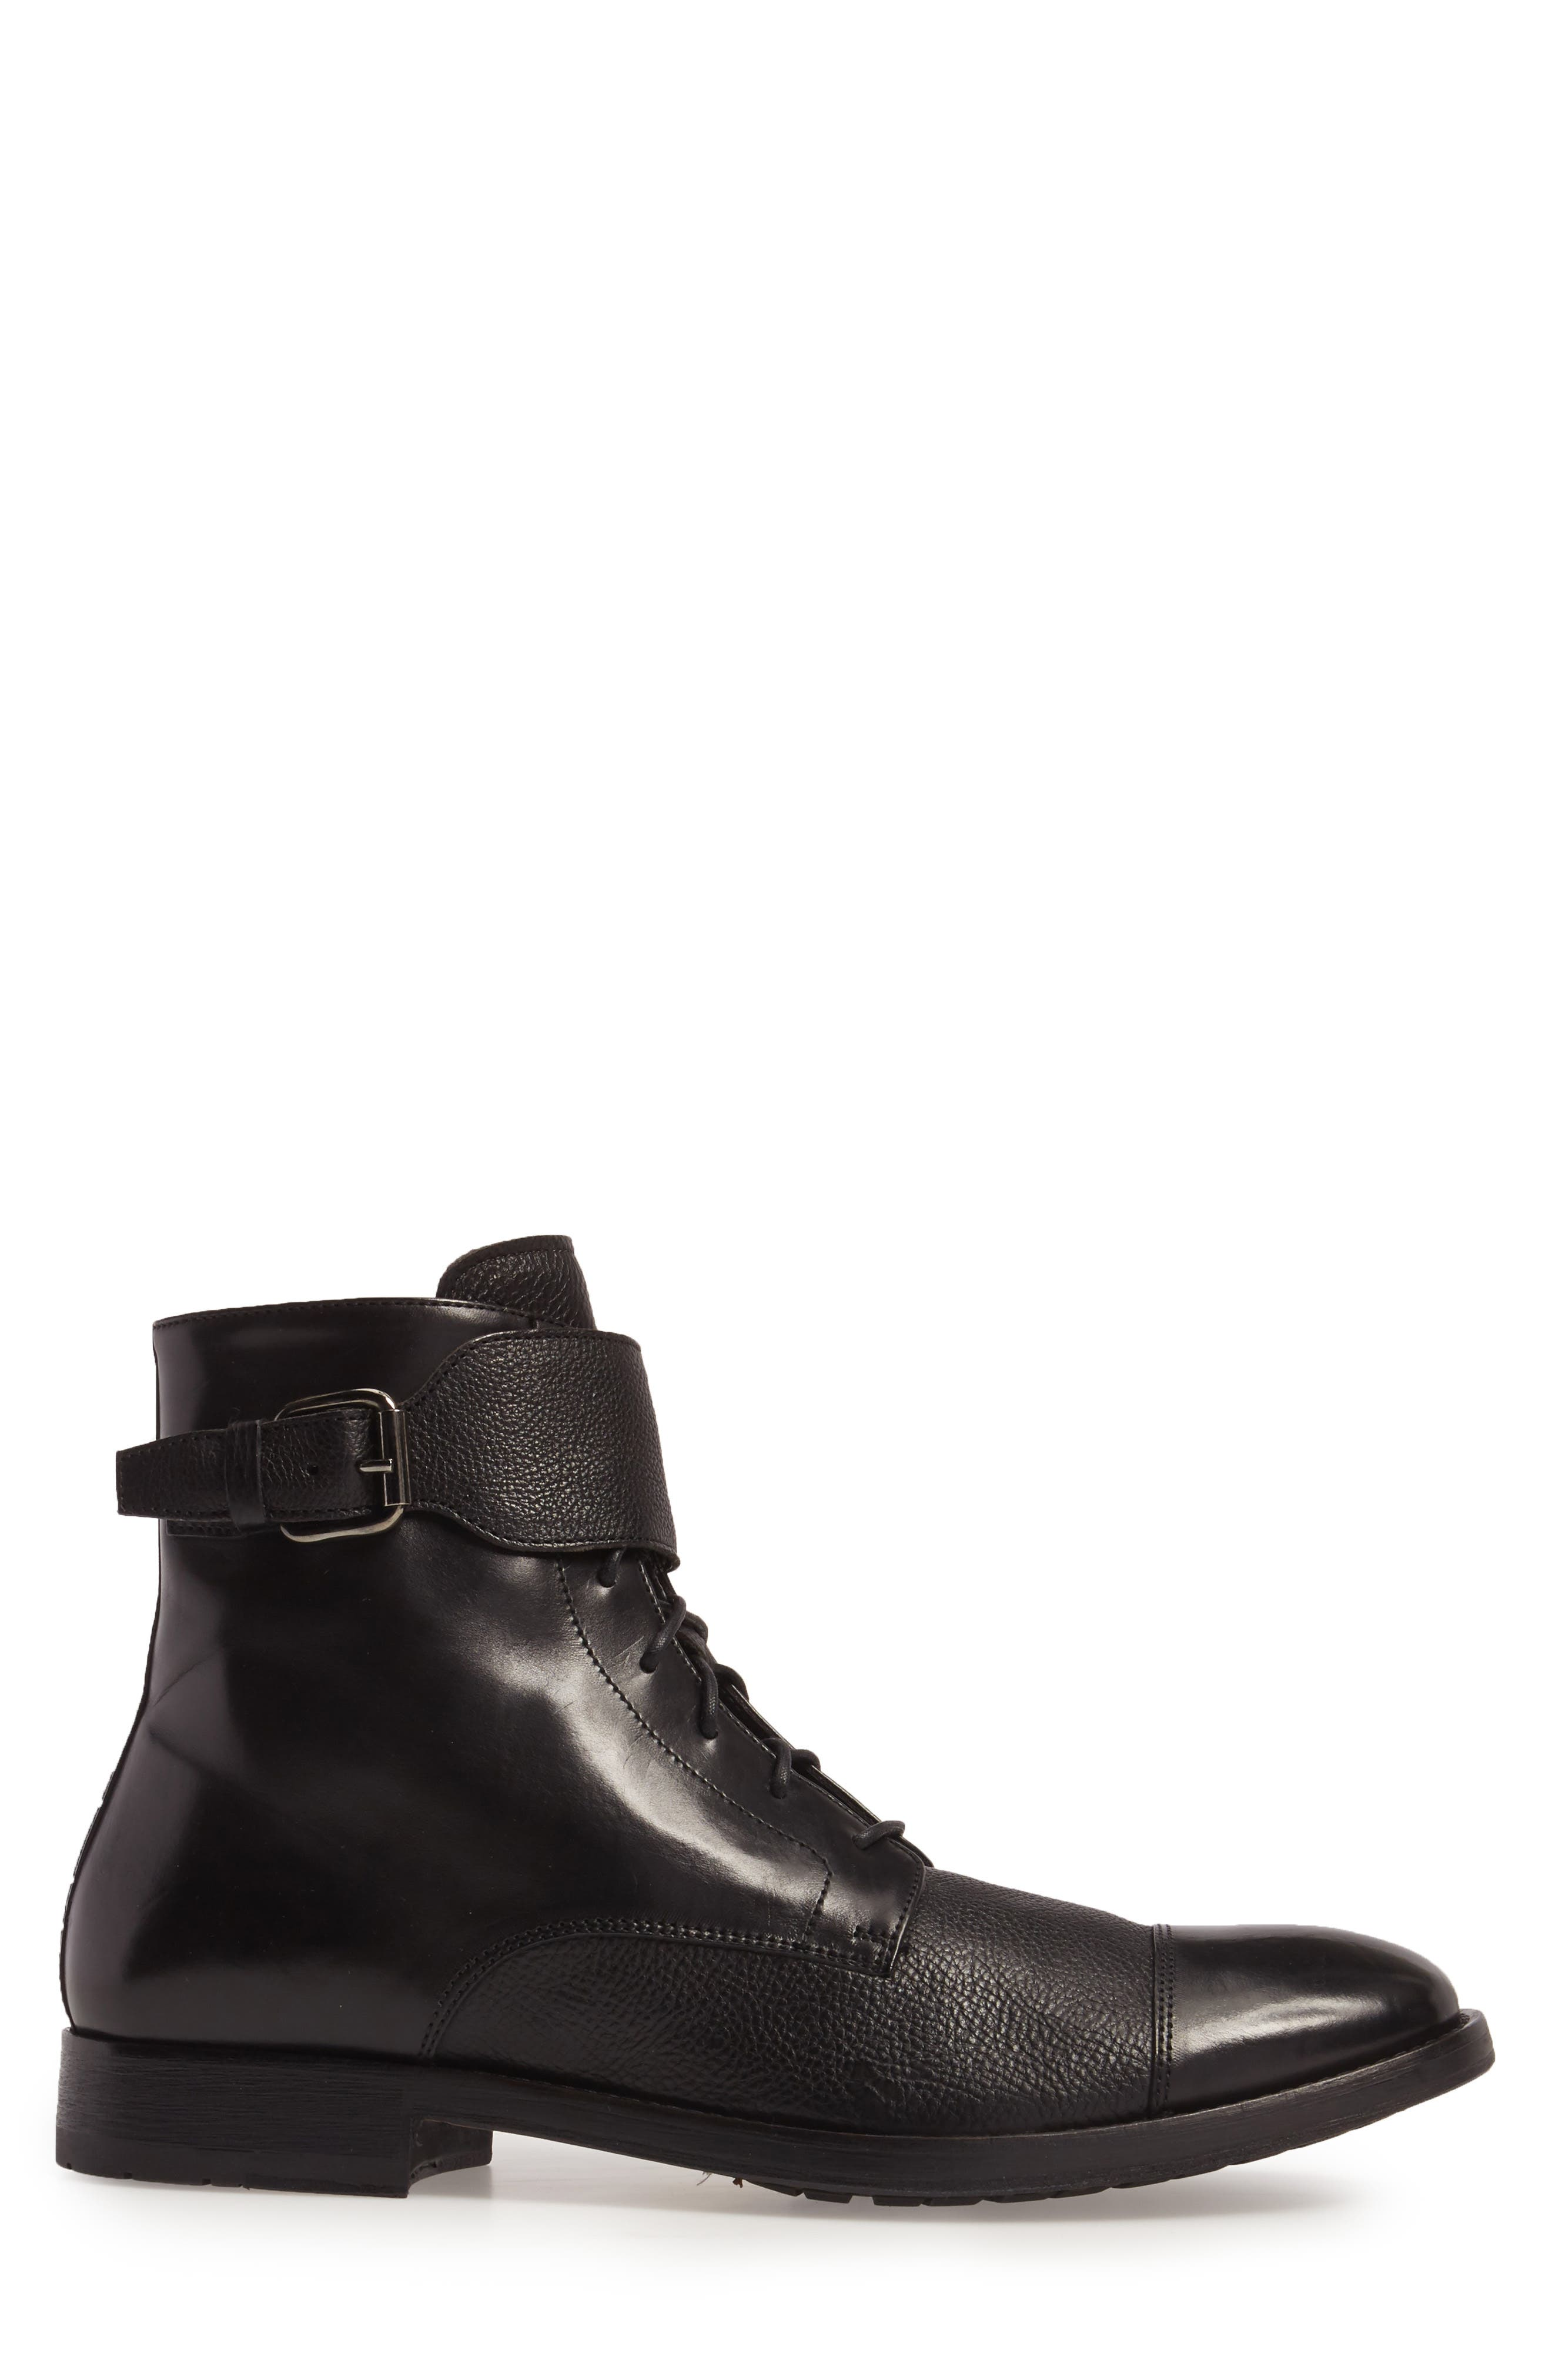 Flyboy Cap Toe Boot,                             Alternate thumbnail 3, color,                             001